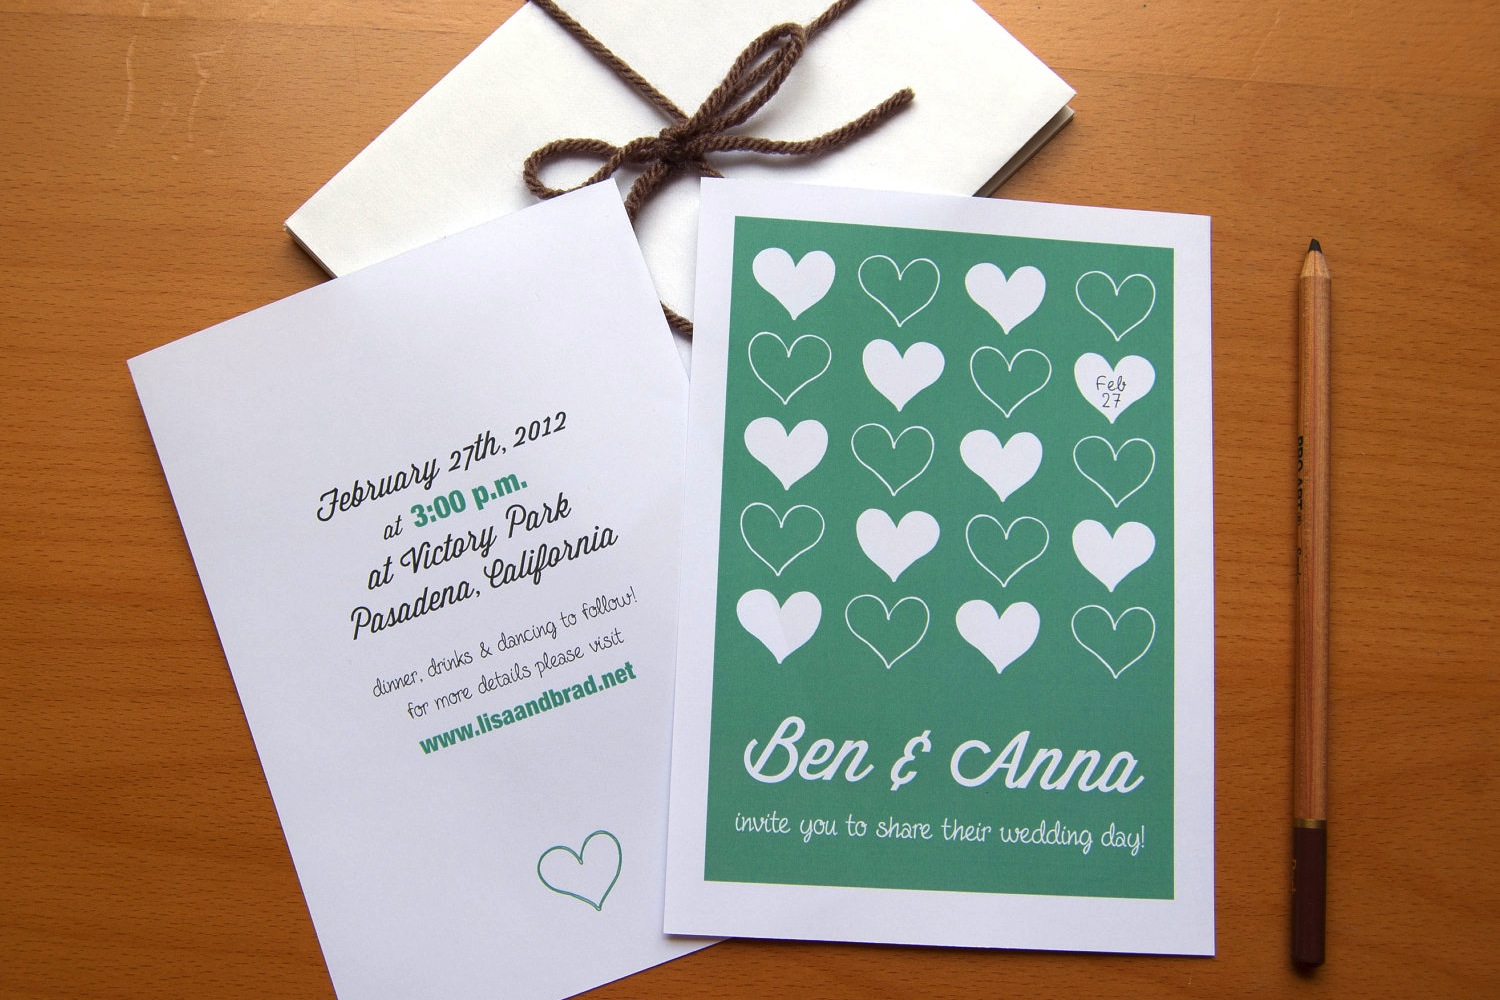 Budget-wedding-ideas-diy-invitations-etsy-weddings-teal-white-hearts.original